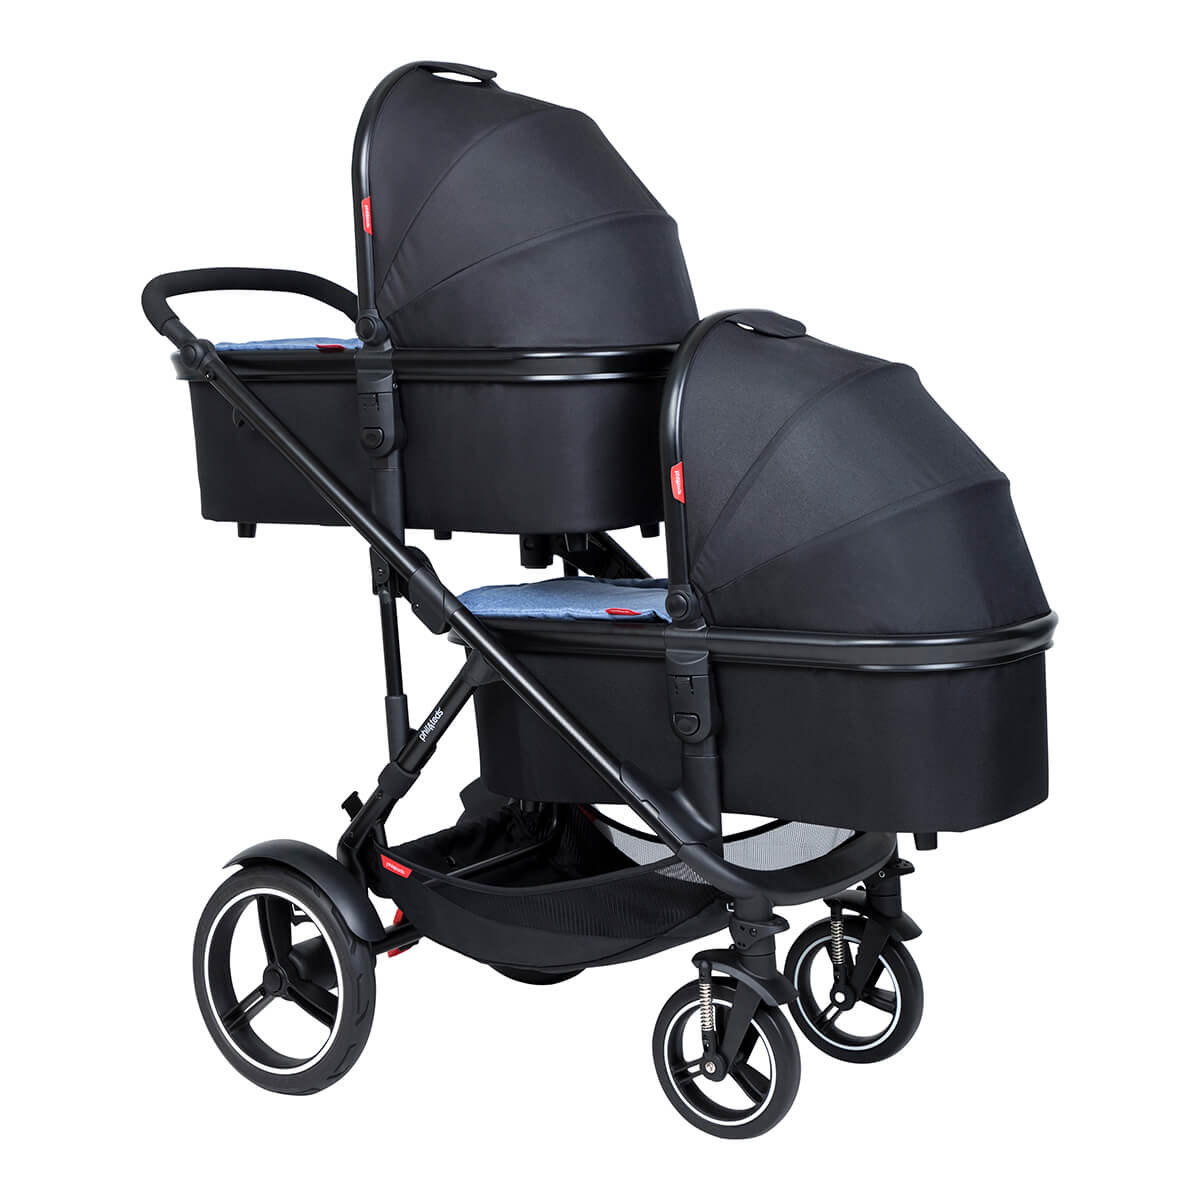 https://cdn.accentuate.io/4513464057952/19440099983544/philteds-voyager-inline-buggy-with-double-snug-carrycots-v1626486728938.jpg?1200x1200